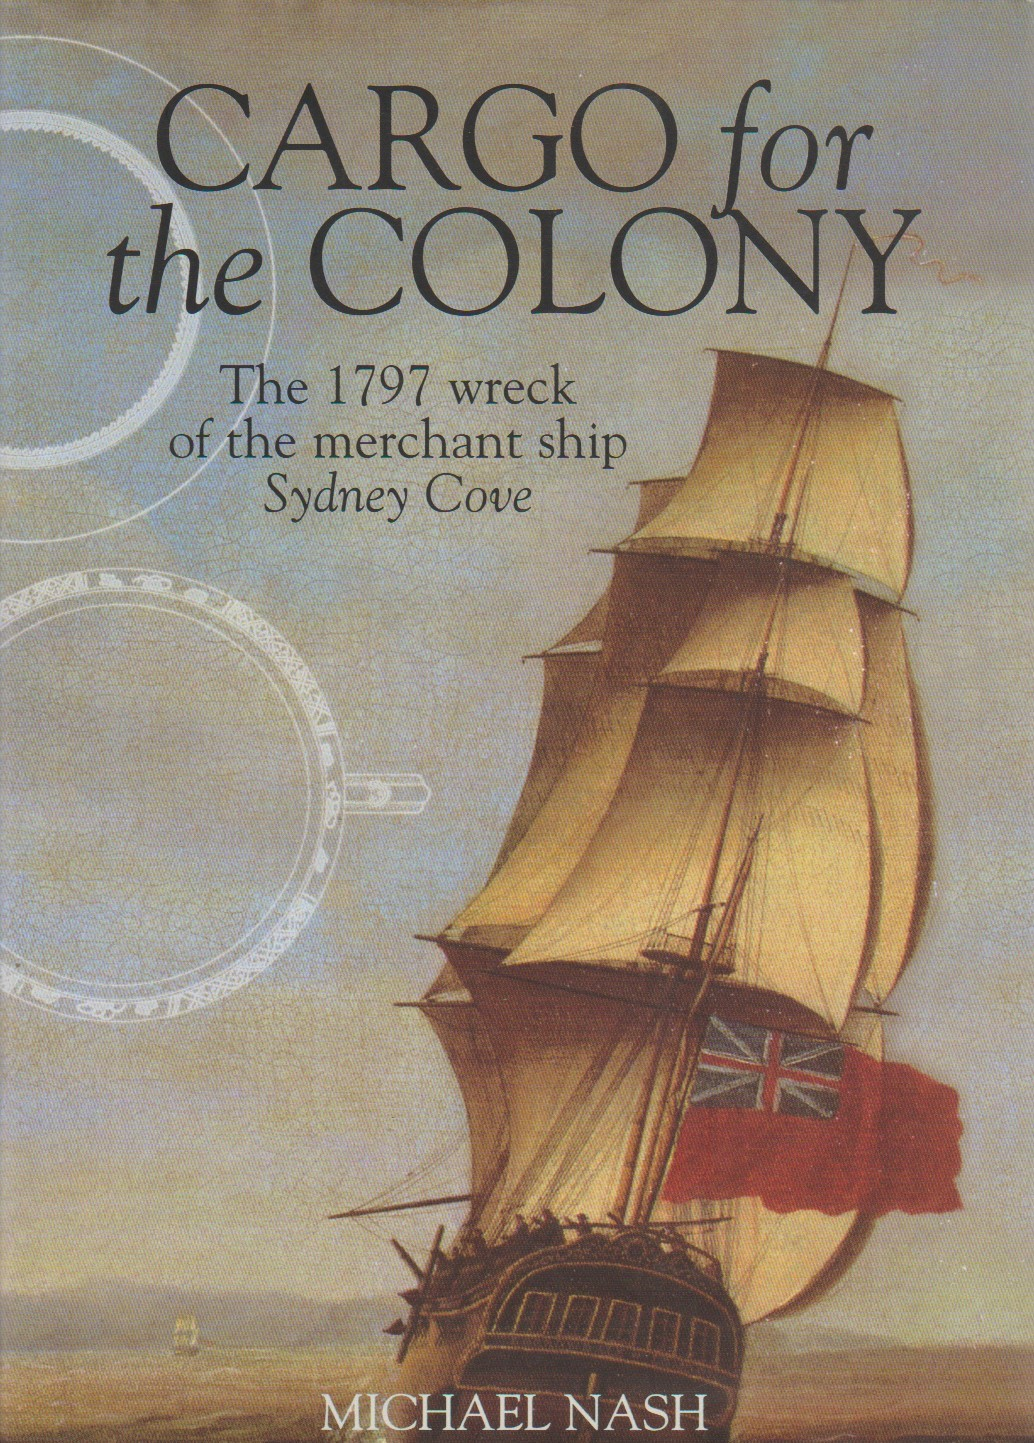 Cargo for the Colony - the 1797 wreck of the merchant ship Sydney Cove